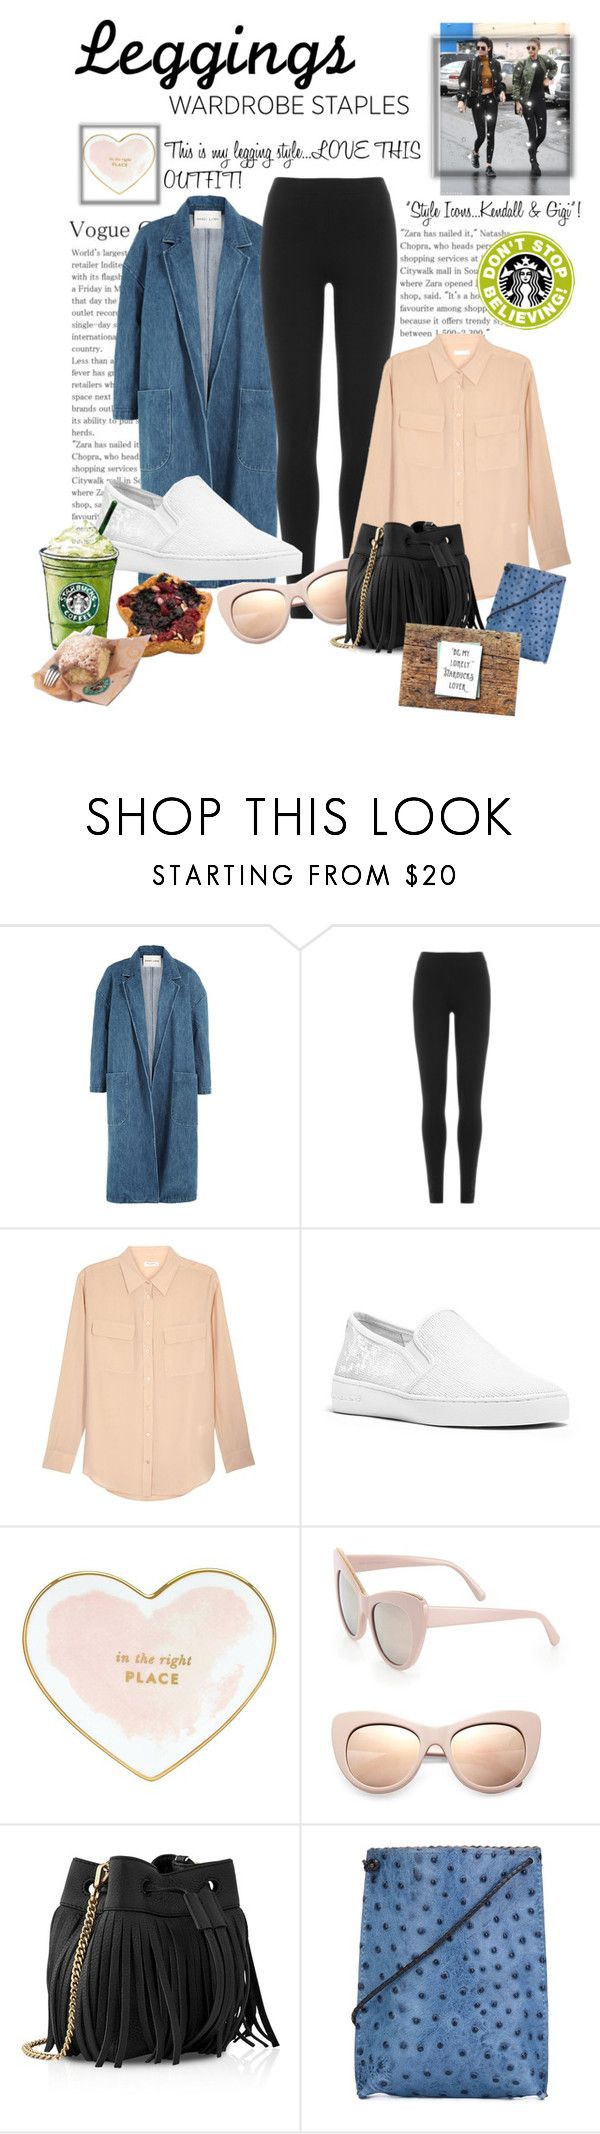 """CONTEST...LEGGINGS...This is my favorite  leggings outfit!"" by onesweetthing ❤ liked on Polyvore featuring Sandy Liang, ASAP, DKNY, Equipment, MICHAEL Michael Kors, Kate Spade, STELLA McCARTNEY, Whistles, B.May and Coffee Shop"